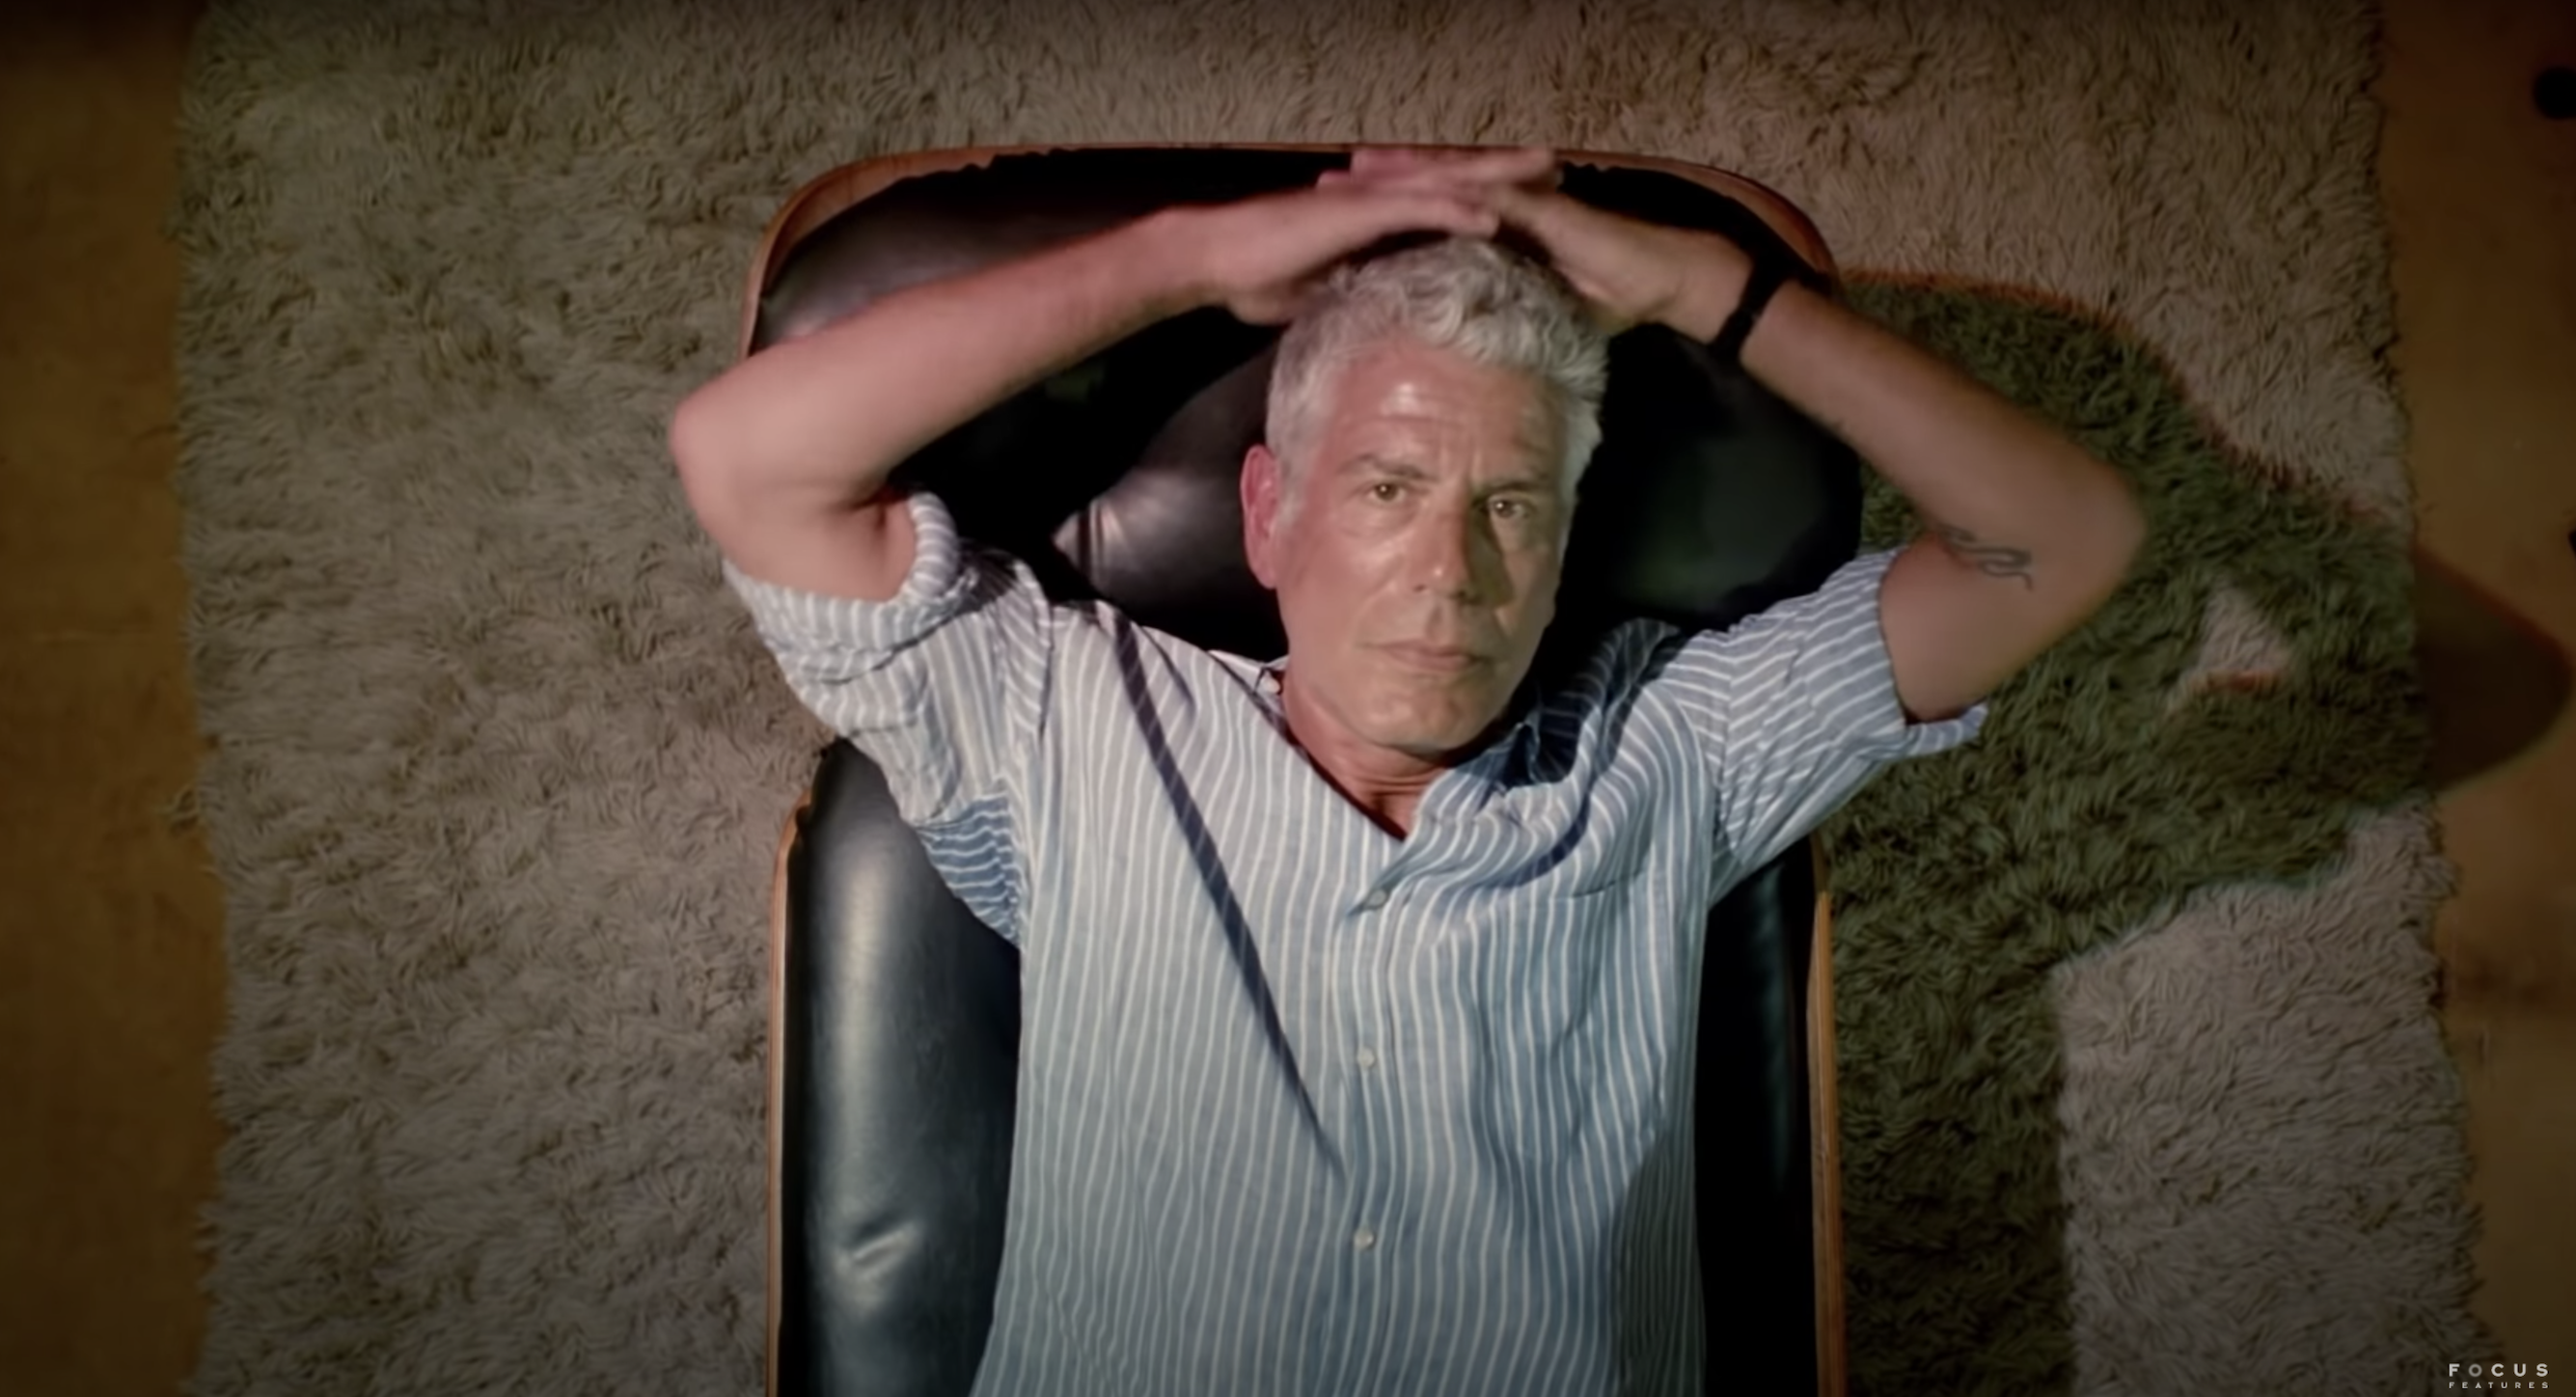 An arial shot of Anthony Bourdain shows the chef laying down on a black leather seat, hands behind his head